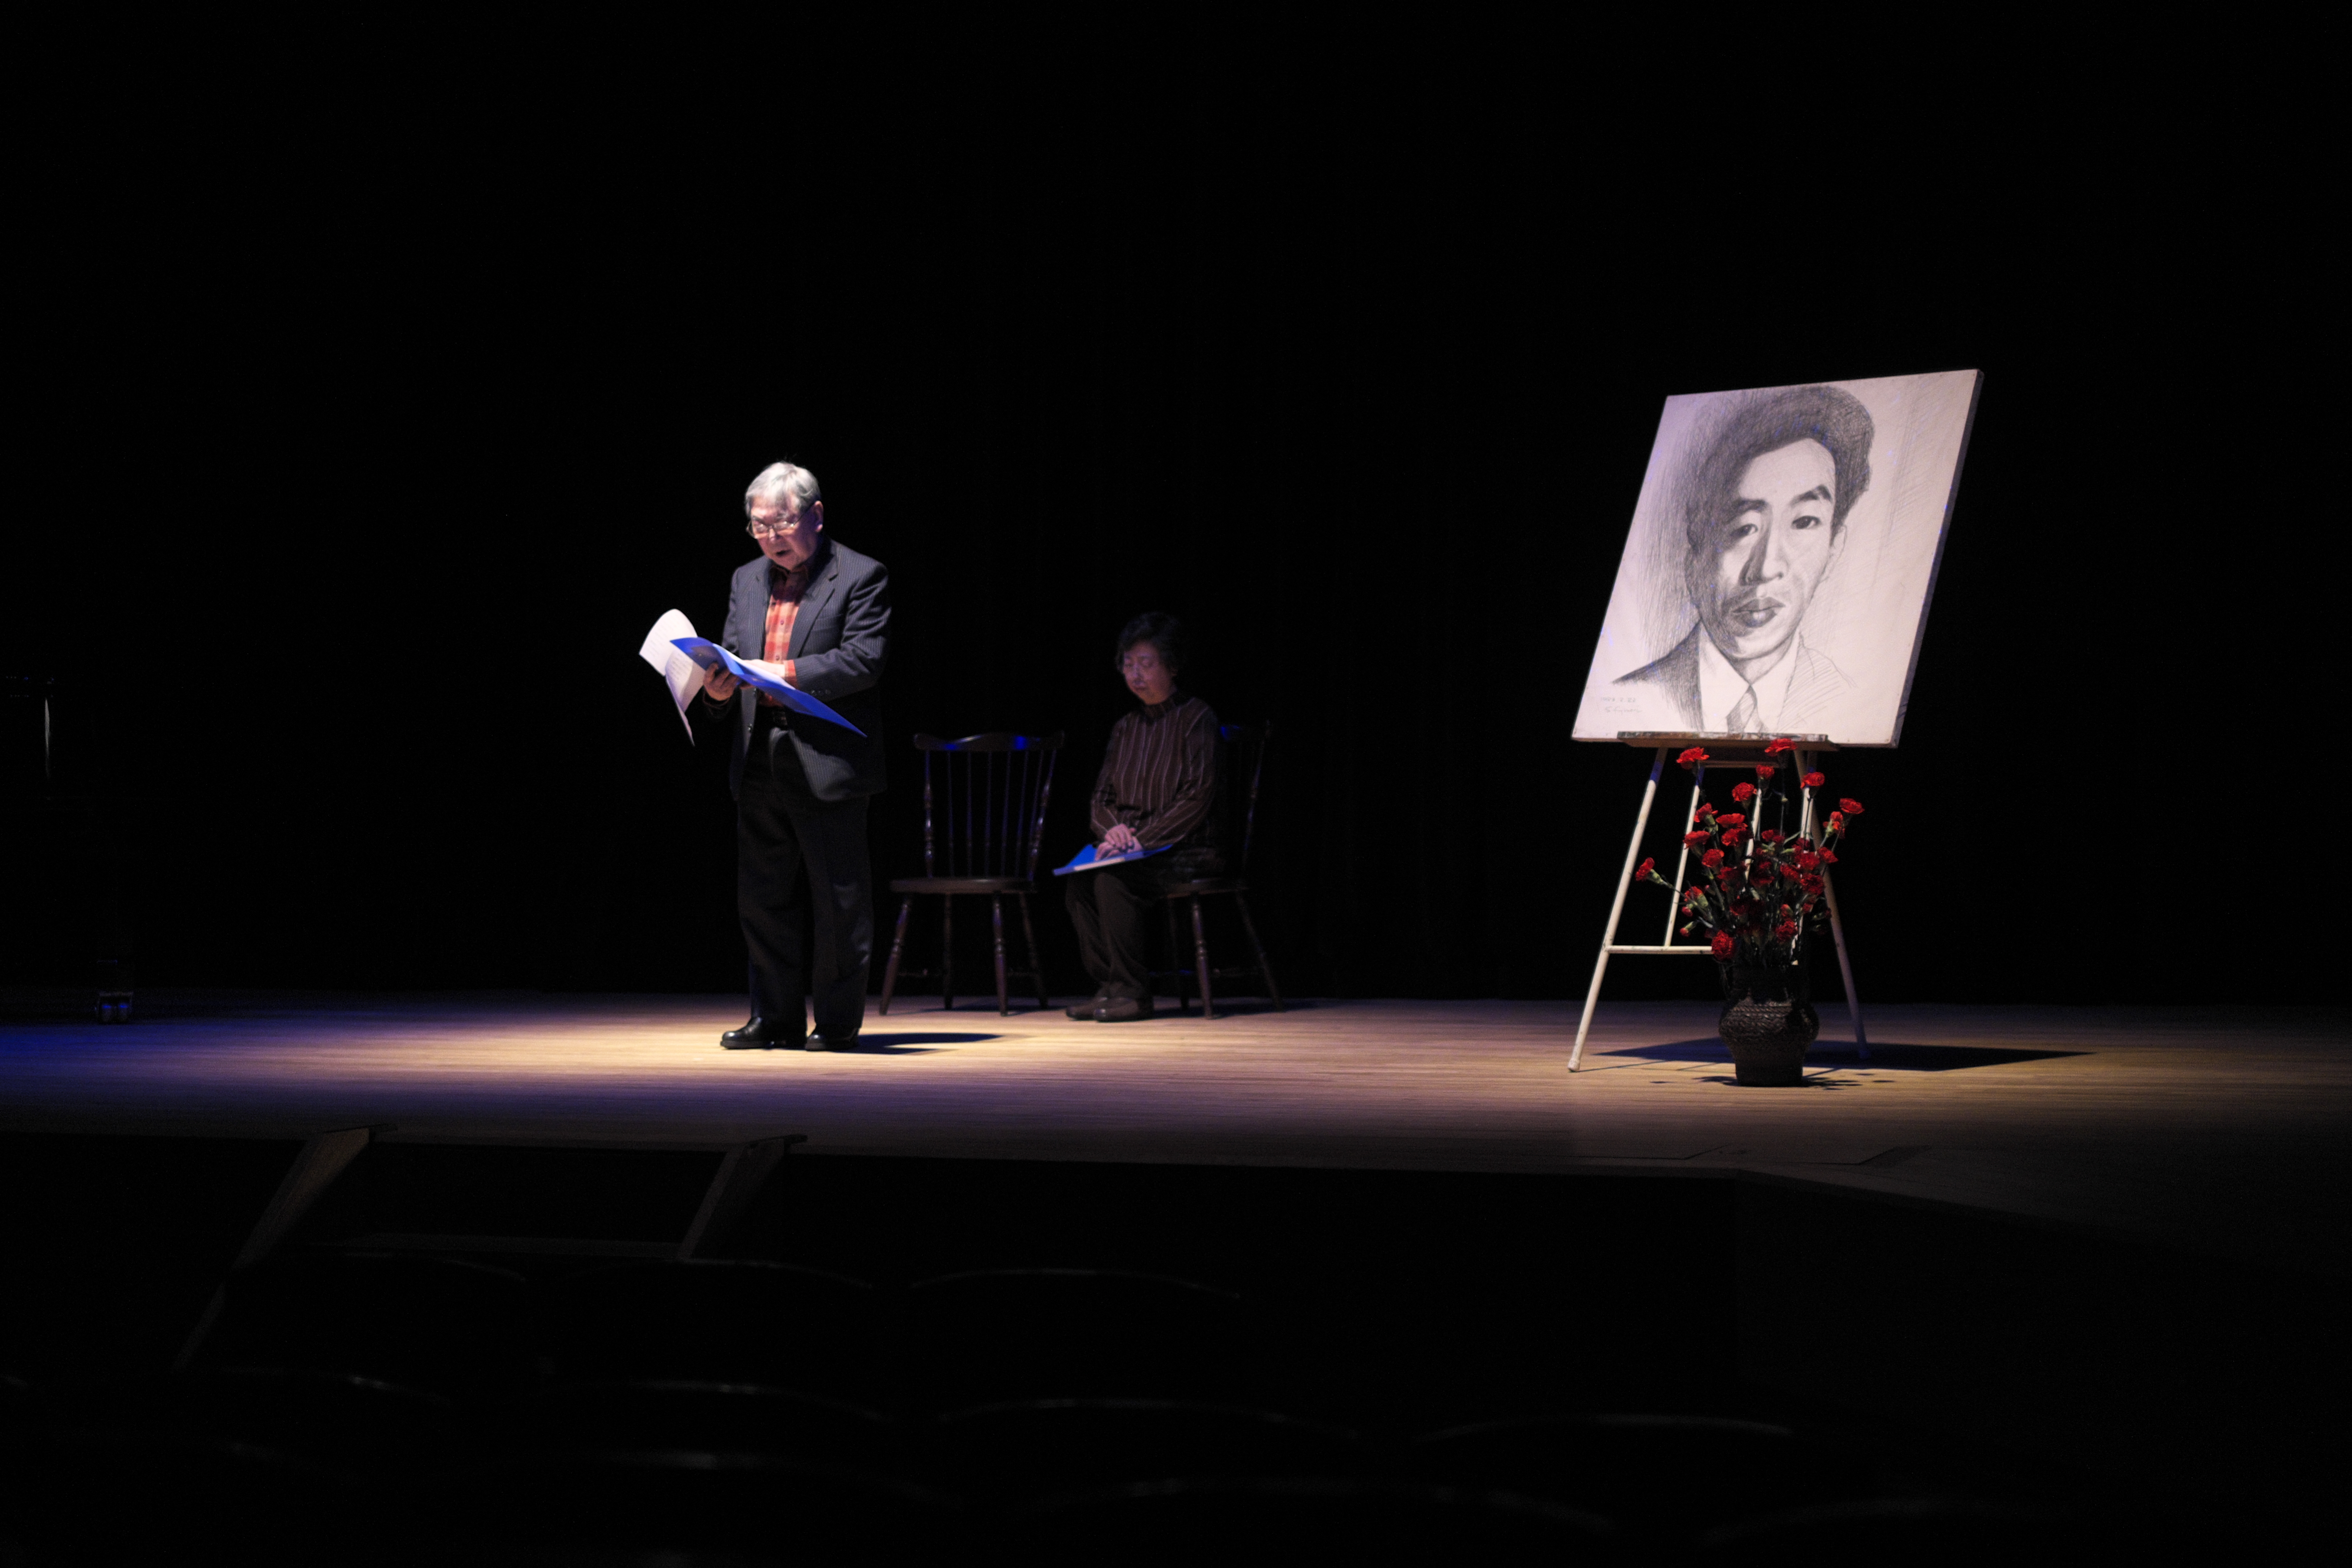 Ceremony: Standing by a portrait of the late proletarian writer Takiji Kobayashi, Takiji-sai chairman Katsuo Terai reads during an evening commemorating the 80th anniversary of the author